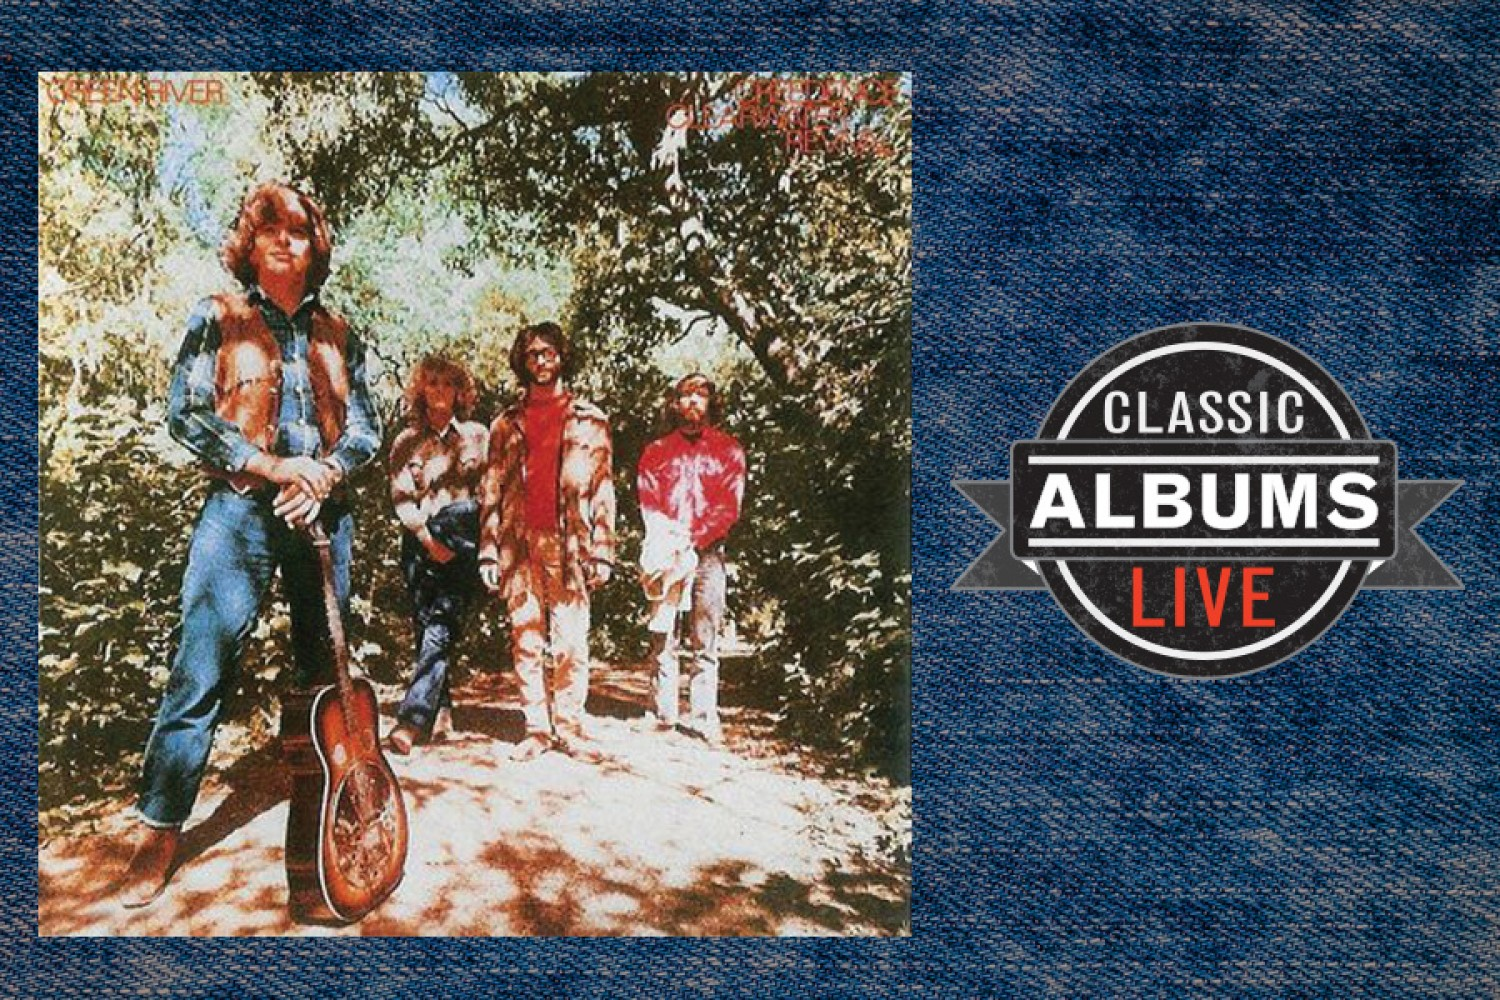 Classic Albums Live: Creedence Clearwater Revival: Green River